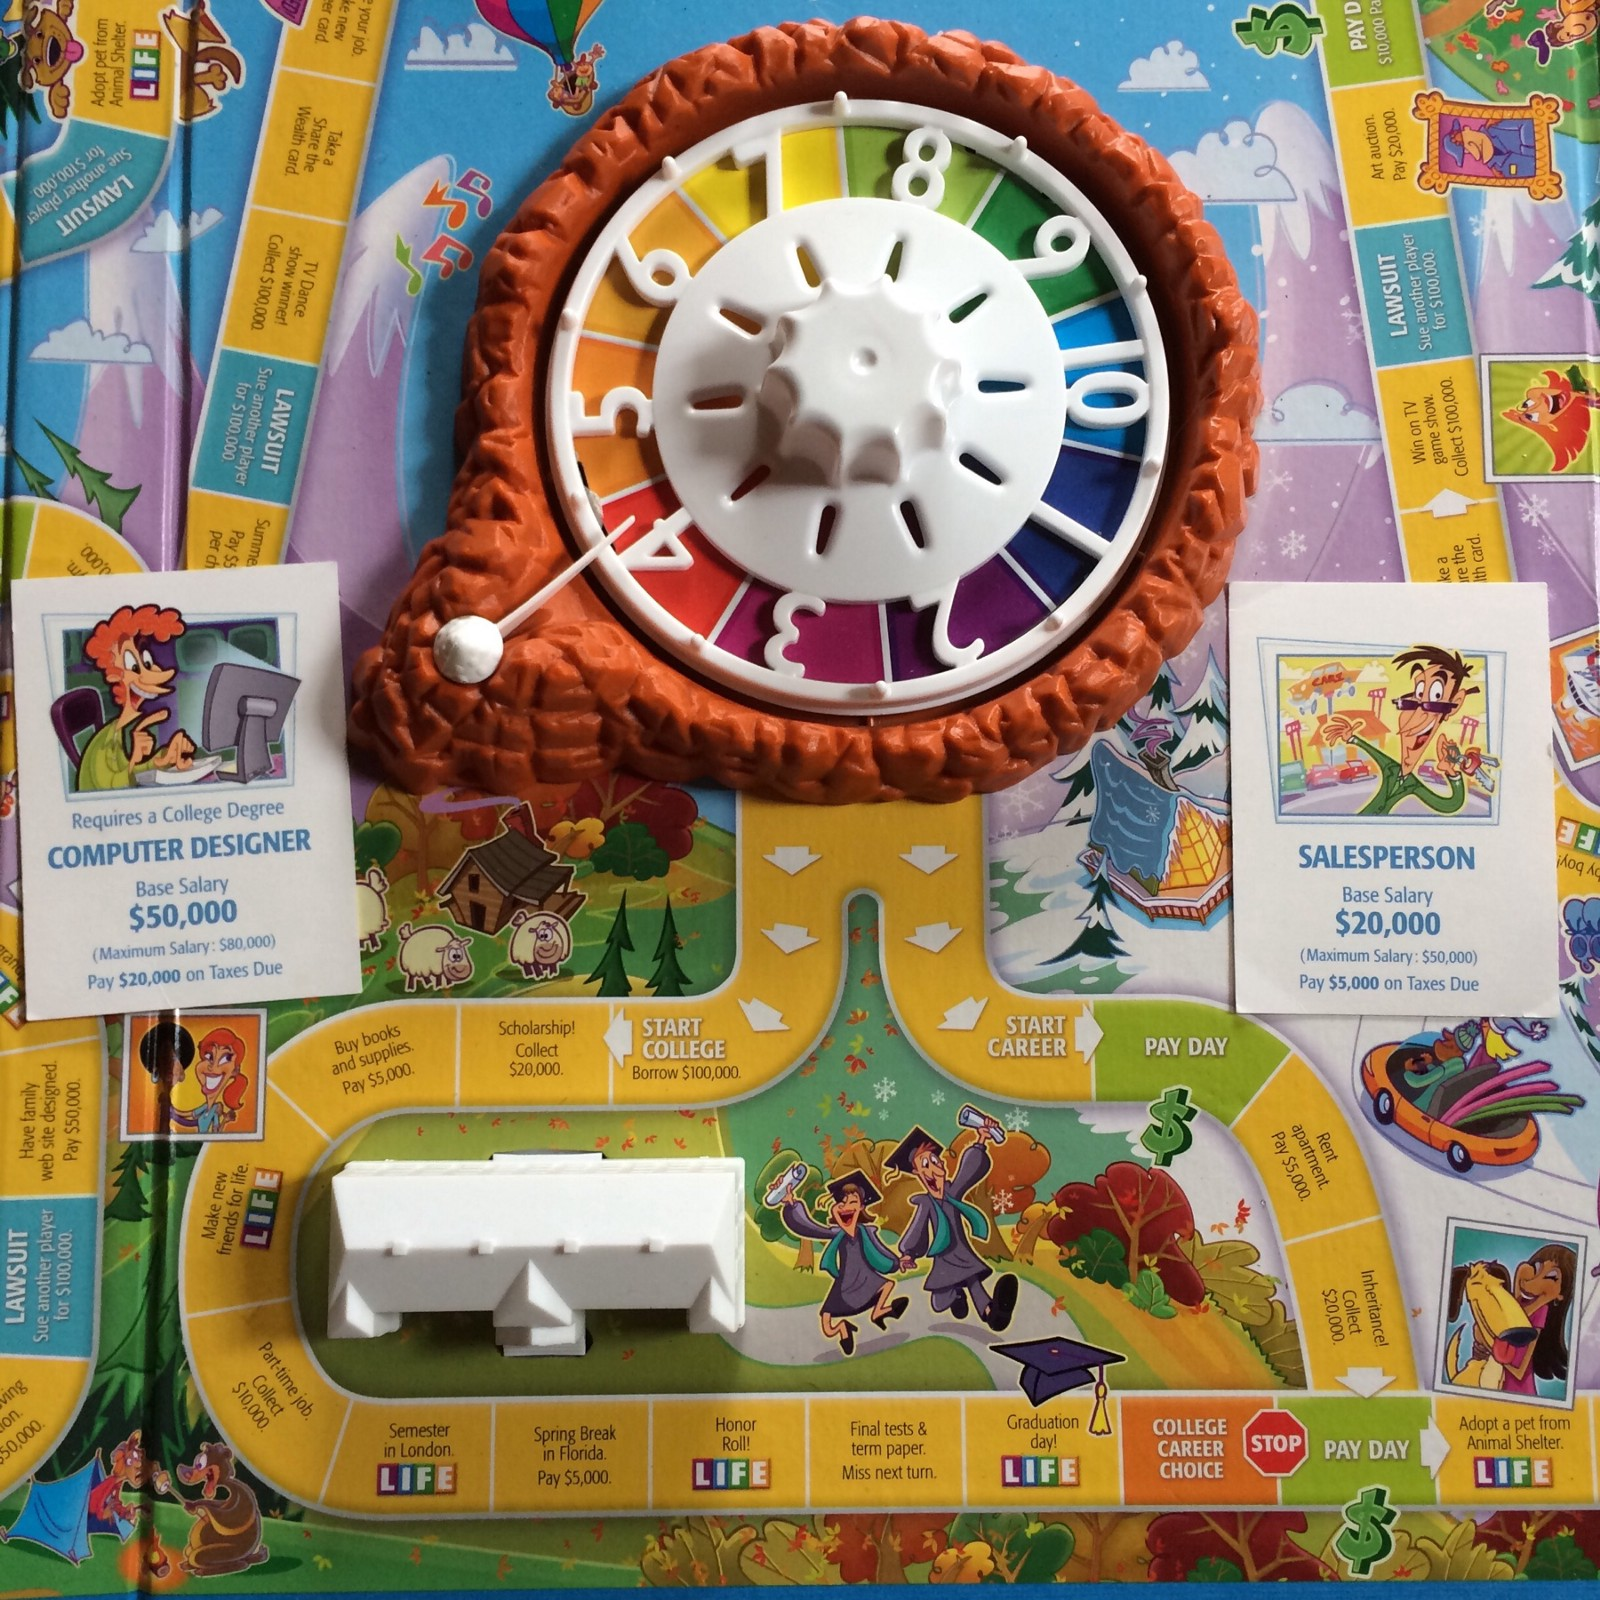 hacking the game of life teaching game design productcoalition com